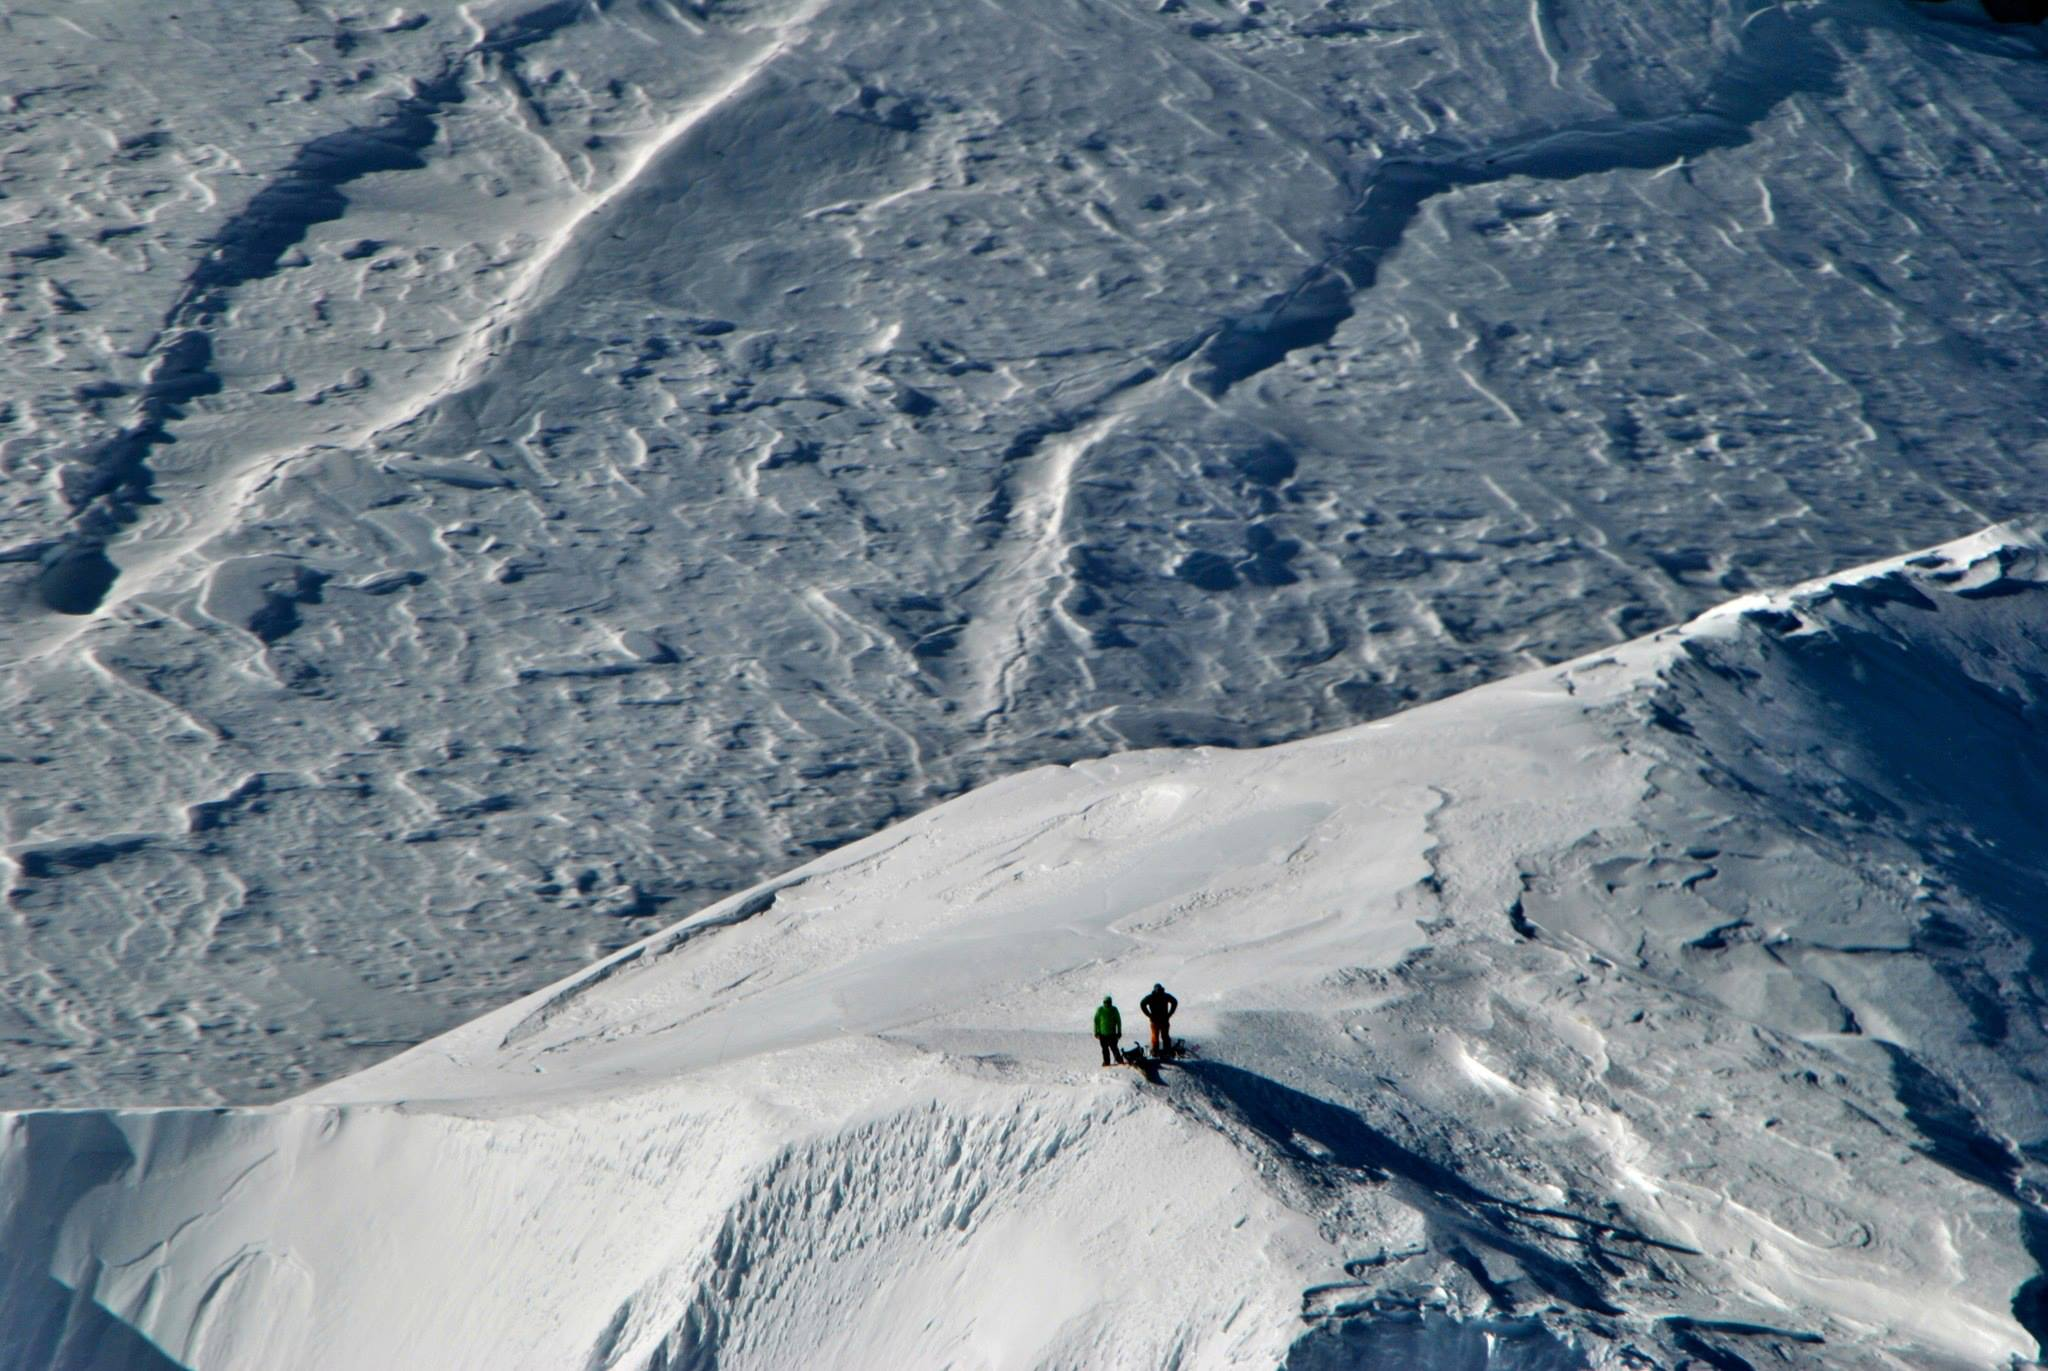 IMG Guides Mike Haft and Peter Dale On the summit of Denali